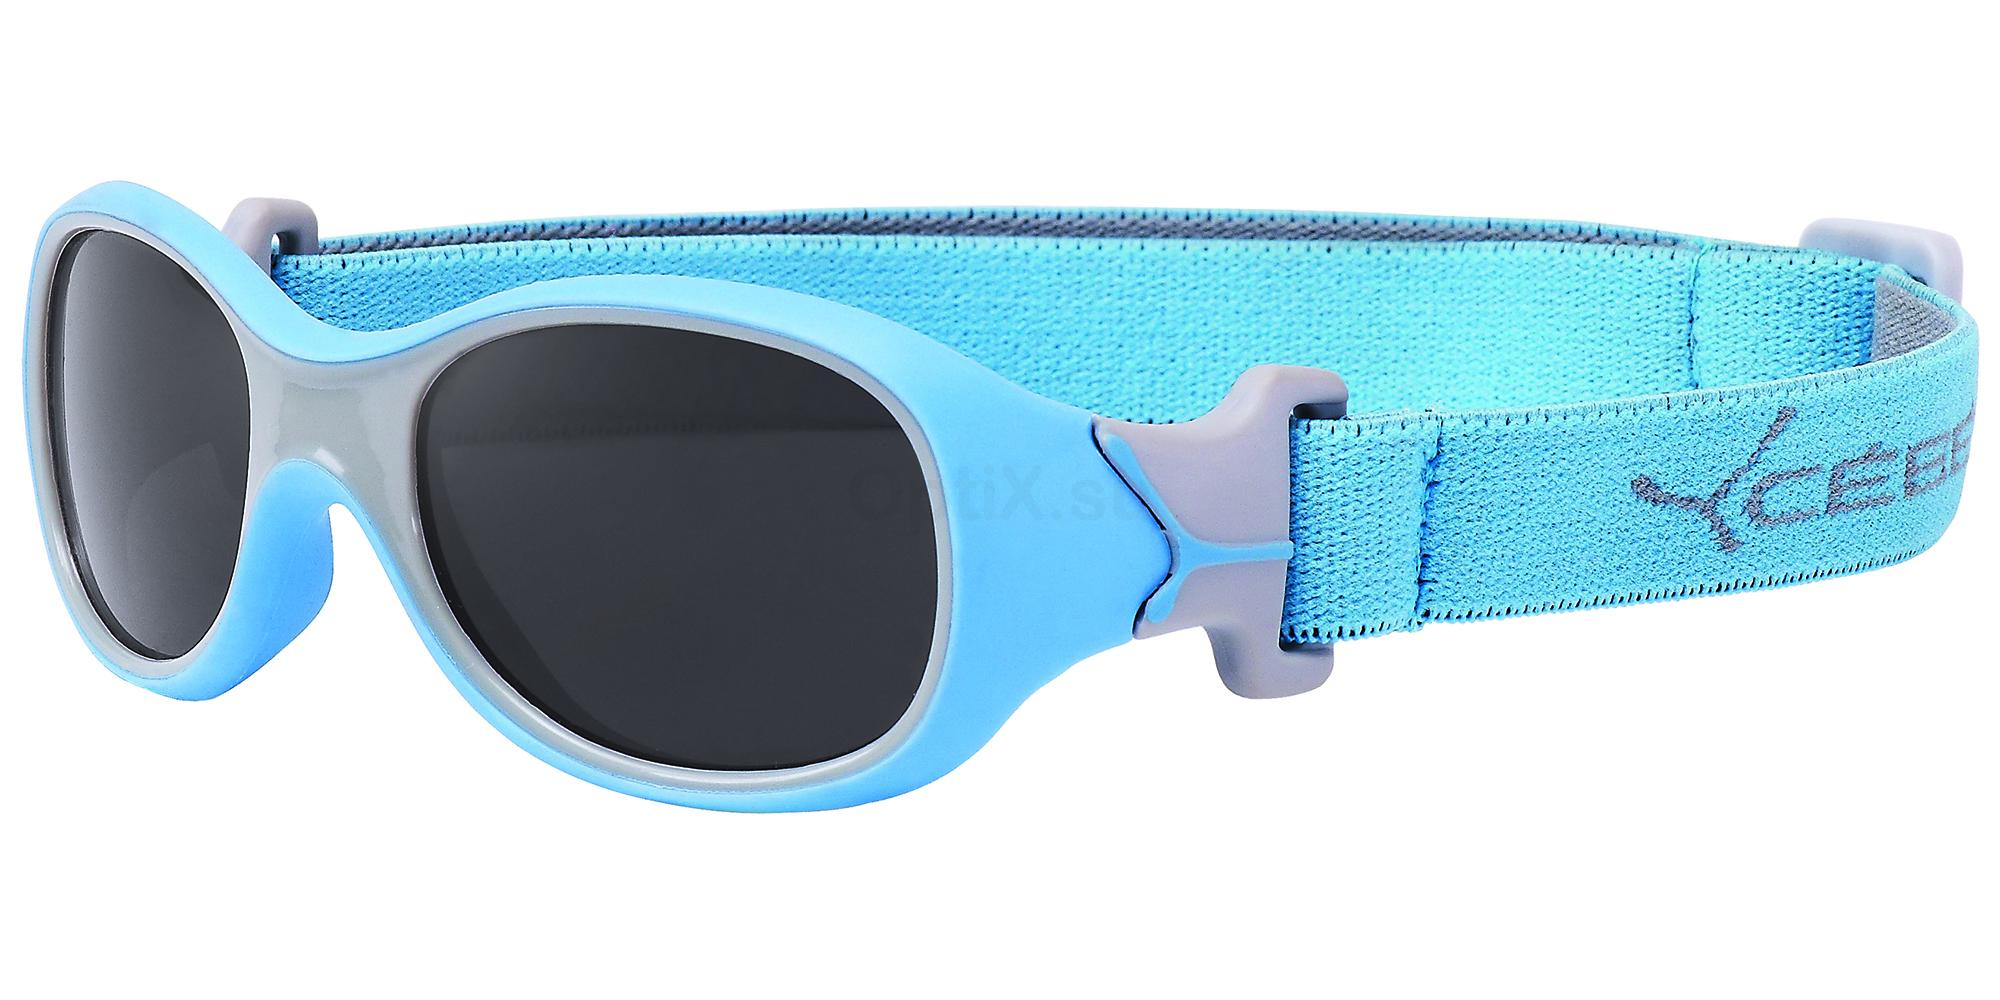 CBCHOU8 Chouka (Age 0-1) Sunglasses, Cebe JUNIOR